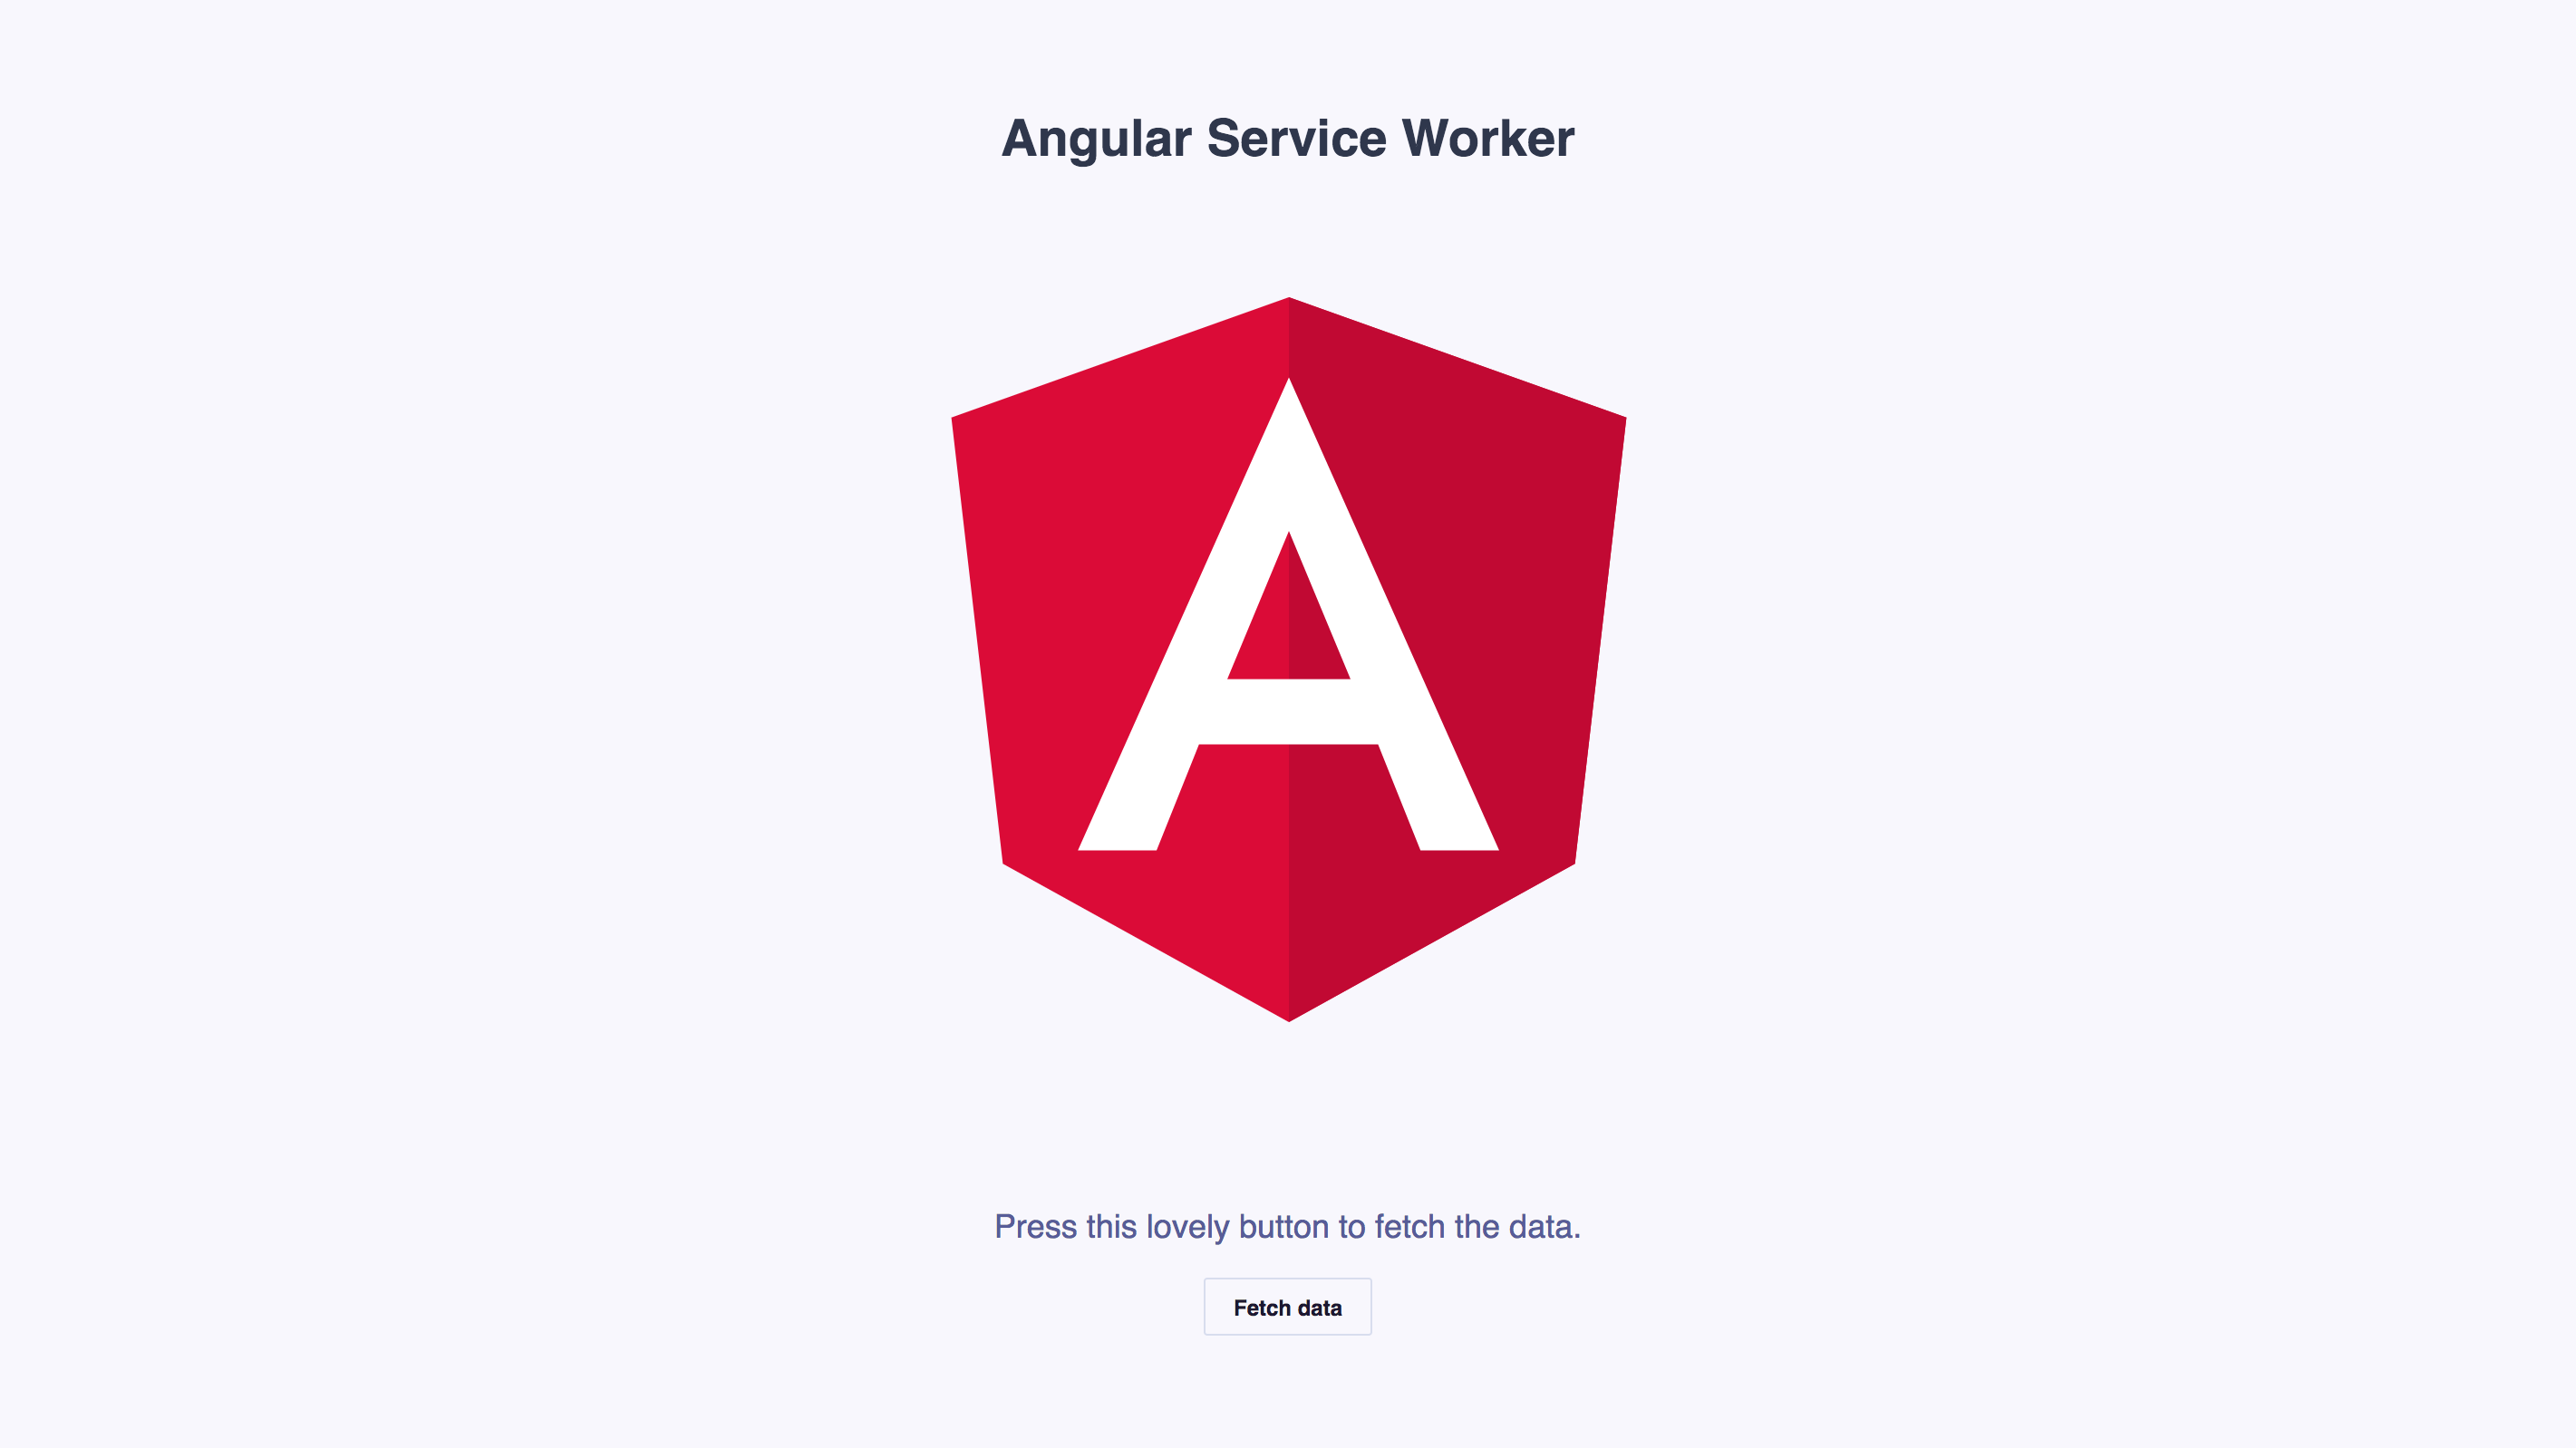 Service Workers & Angular - Bratislava Angular - Medium